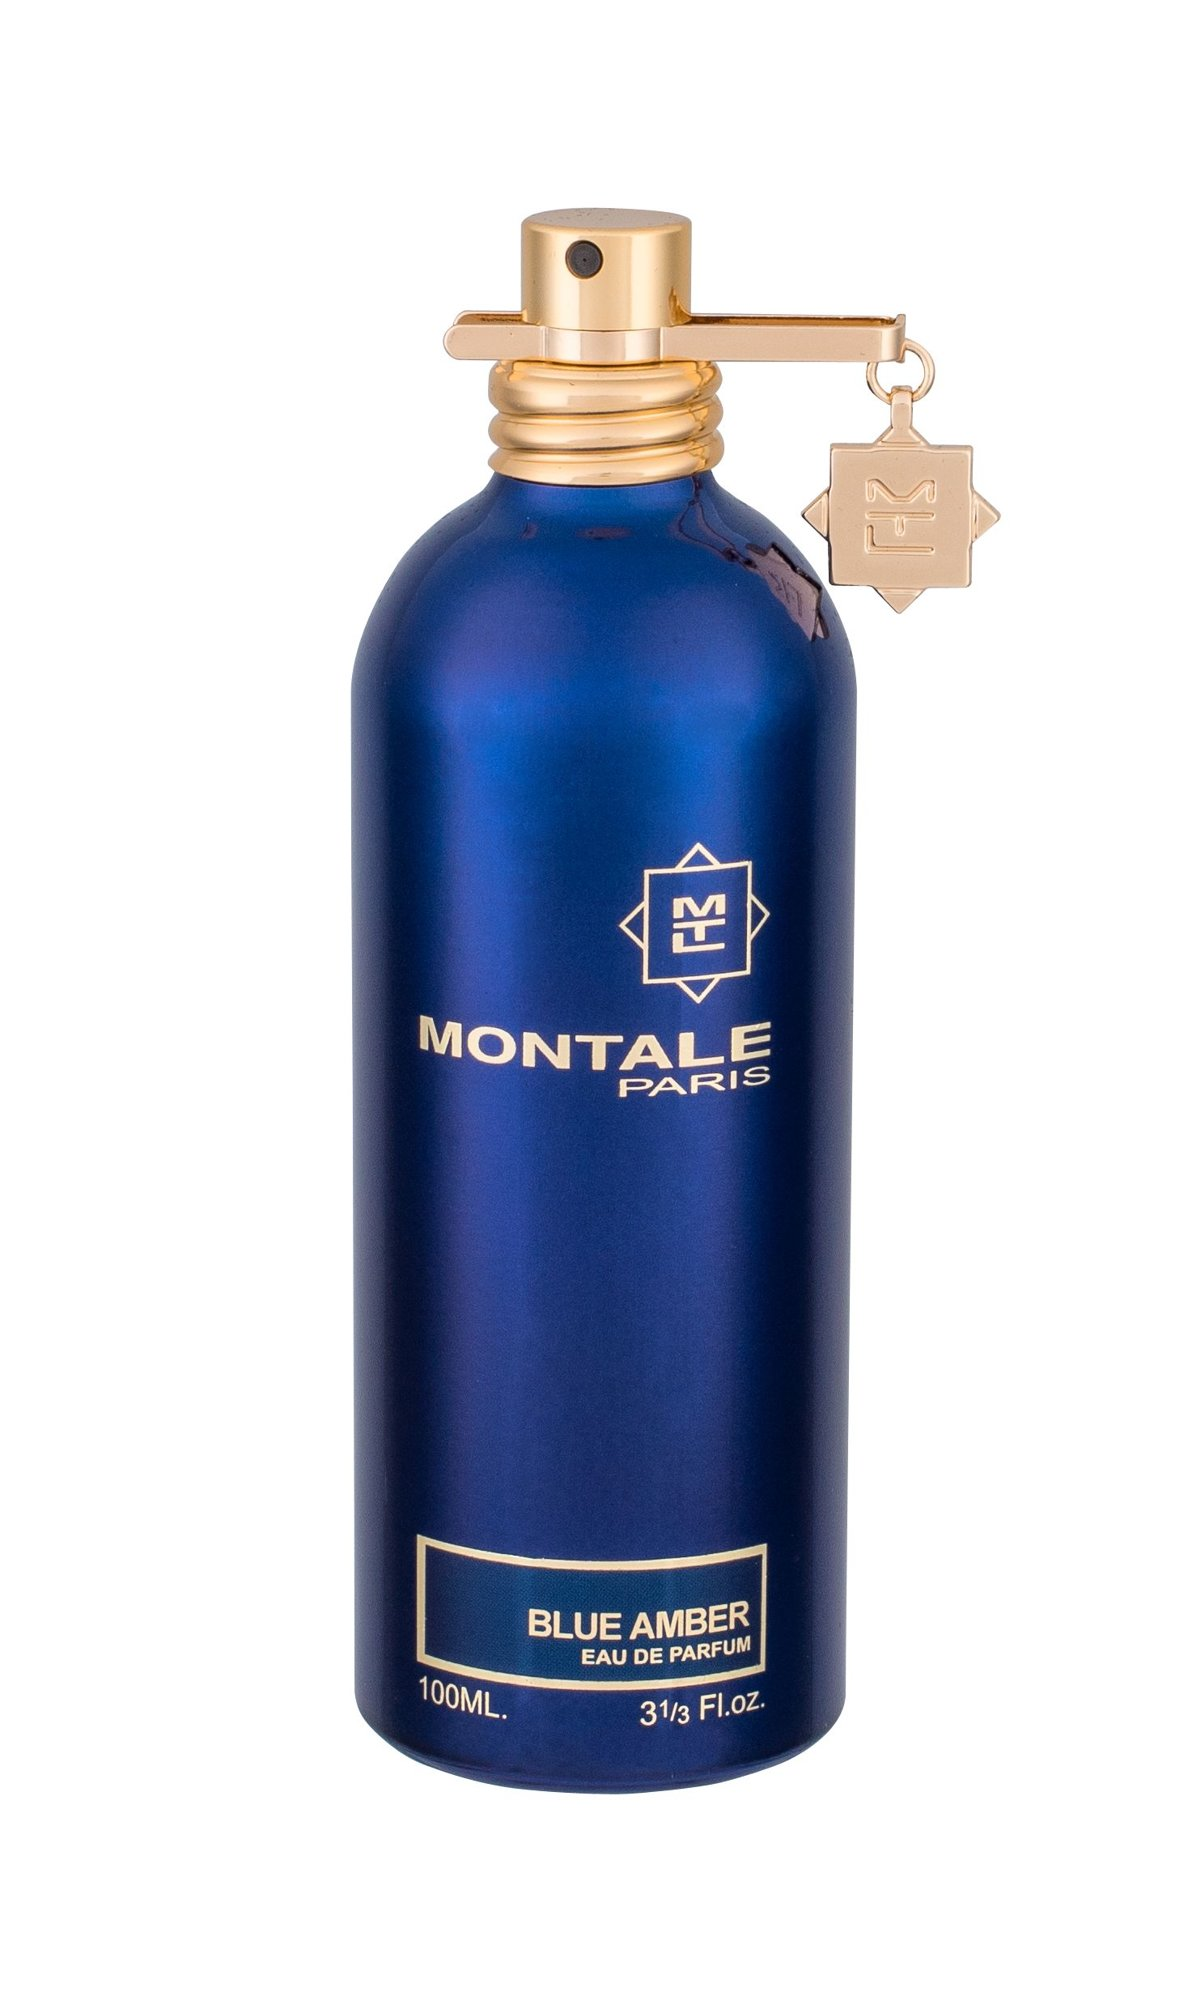 Montale Paris Blue Amber EDP 100ml